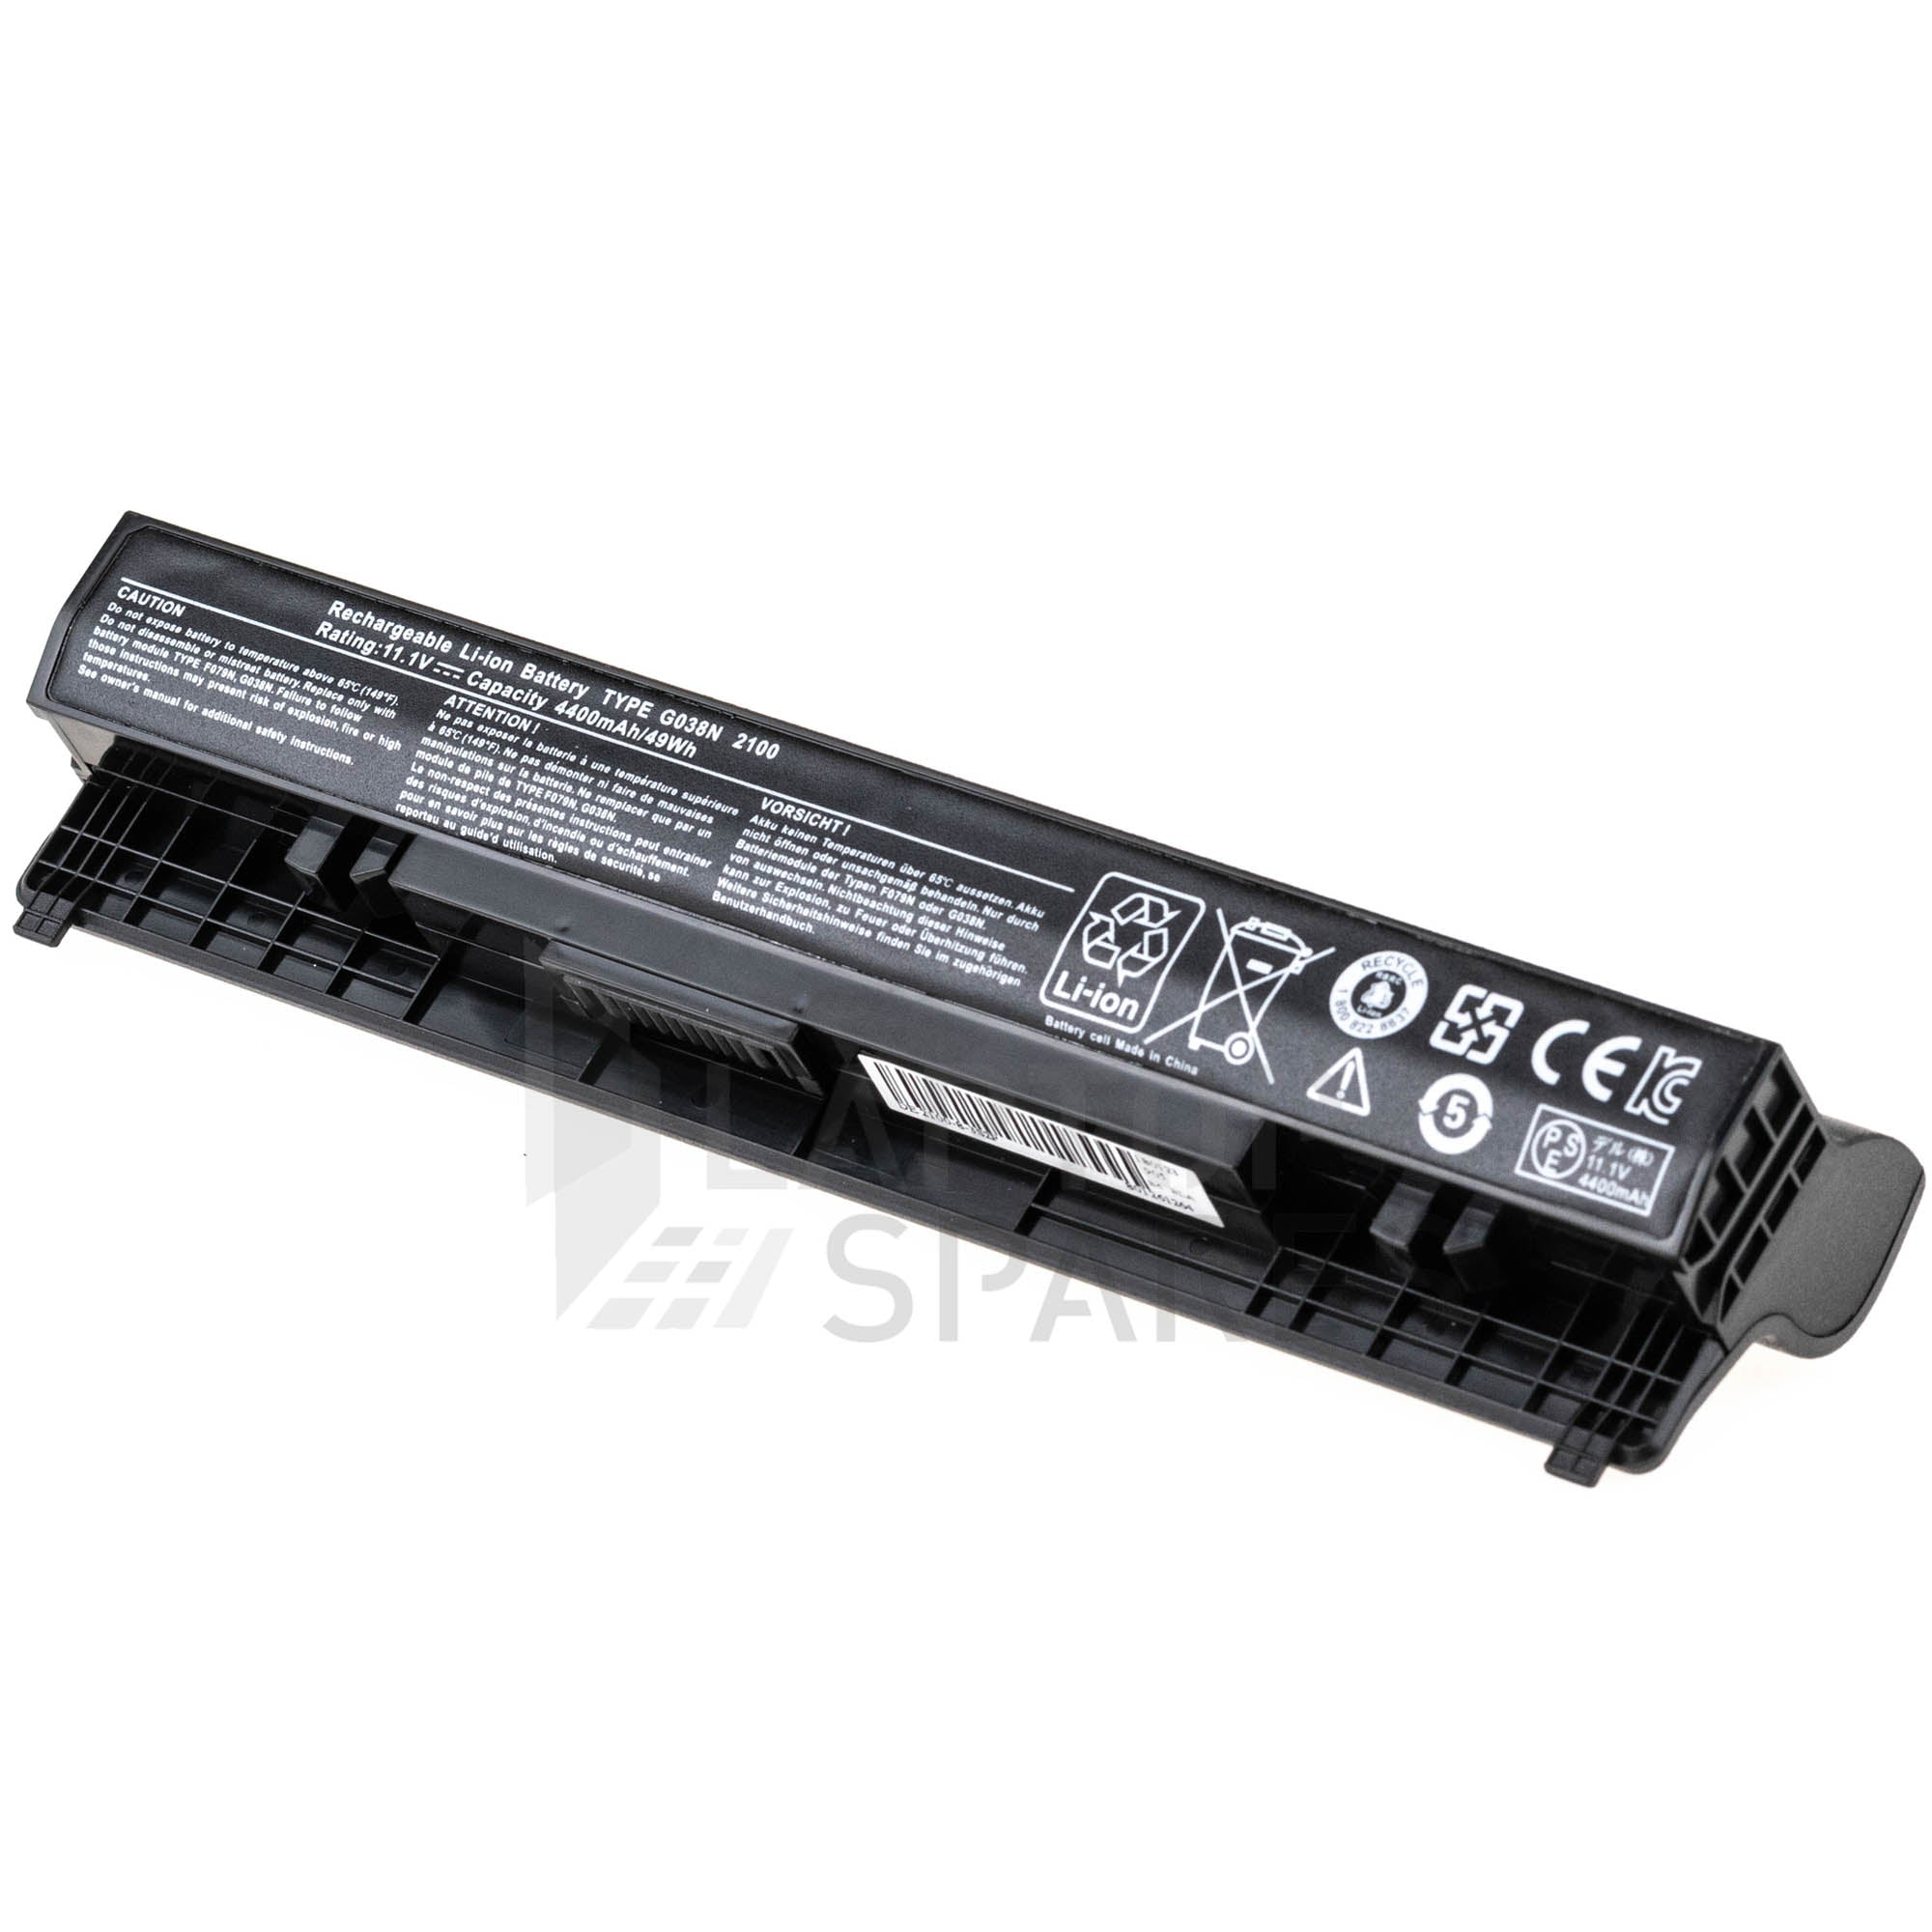 Dell Latitude 2100 G038N 4400mAh 6 Cell Battery